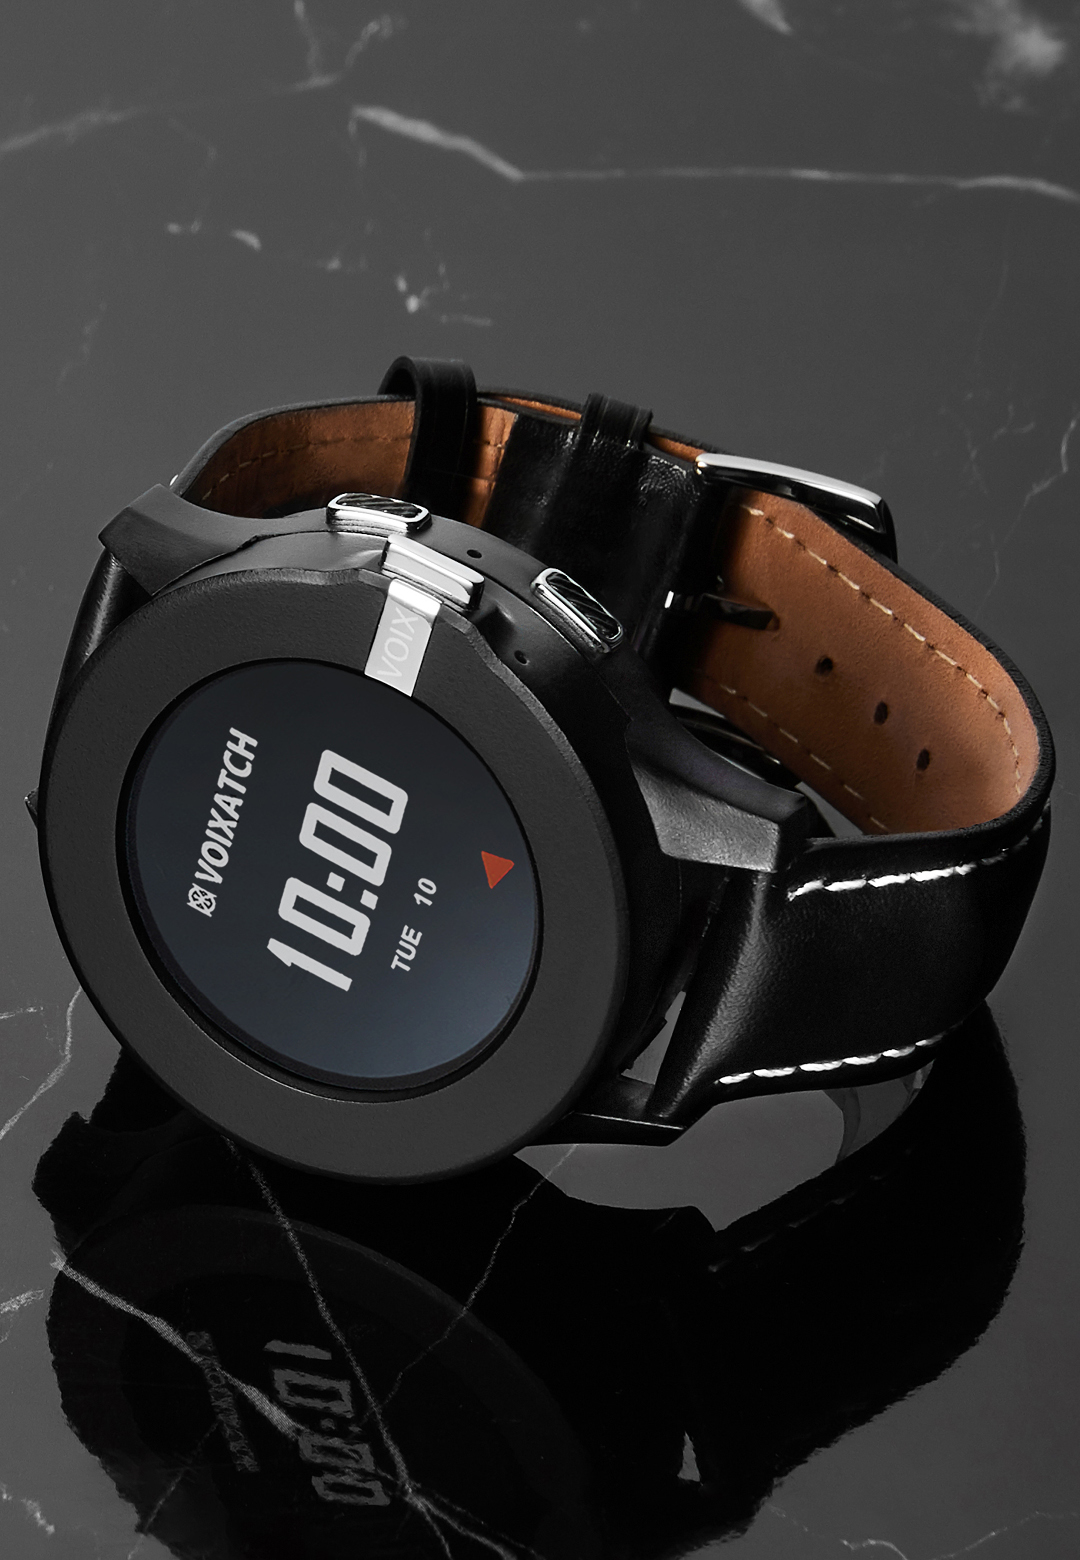 Voixatch – a waterproof LTE + GPS smartwatch with bezel Bluetooth headset by Young Kwon Oh and Jason Oh | Voixatch smartwatch | STIRworld